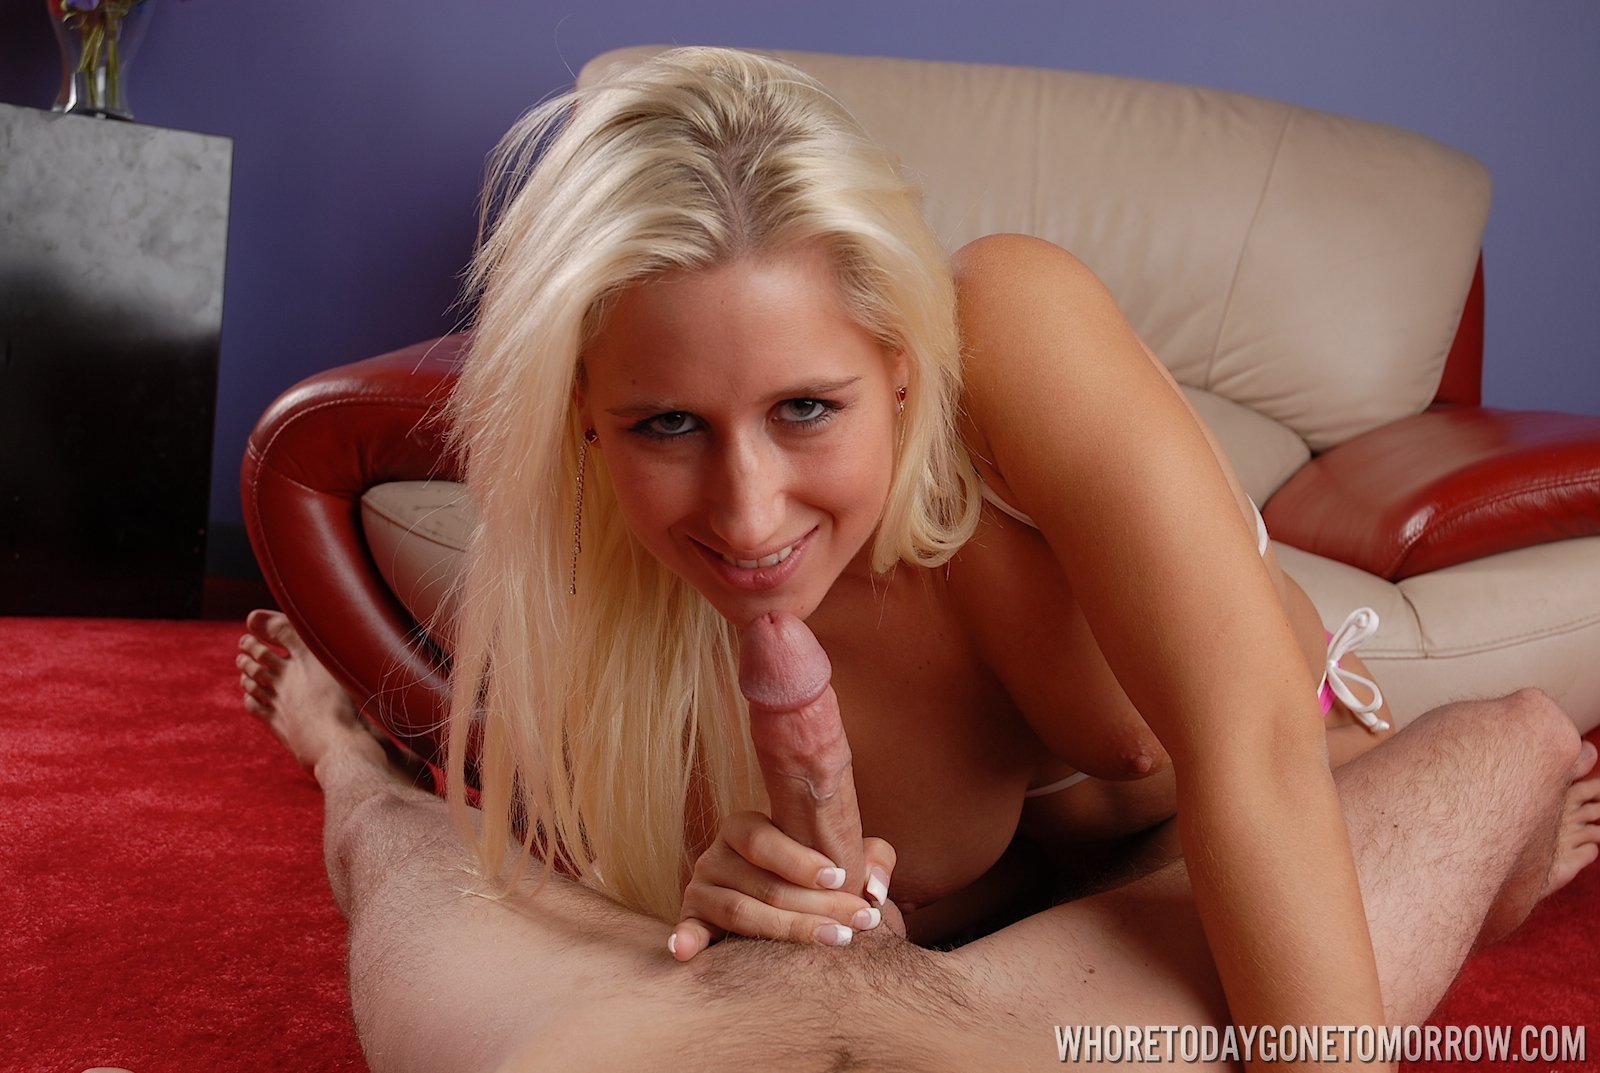 Contact criminal sexual This  Blonde is the kinkiest of kinks and loves anal - Melissa Alecxander - Tony Tigrao -  -  -